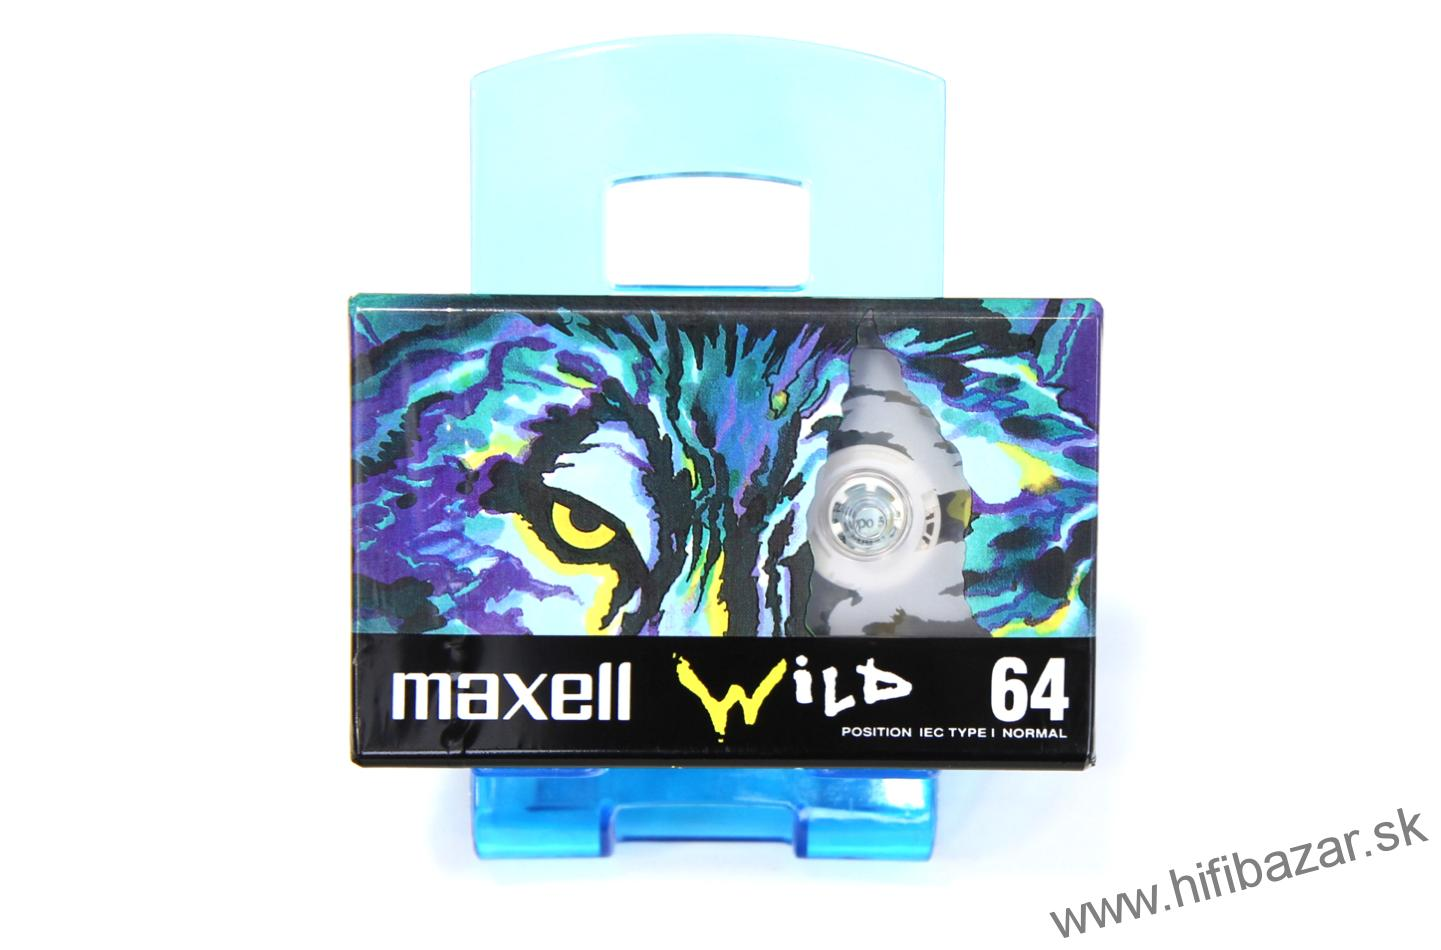 MAXELL WILD-64 Position Normal